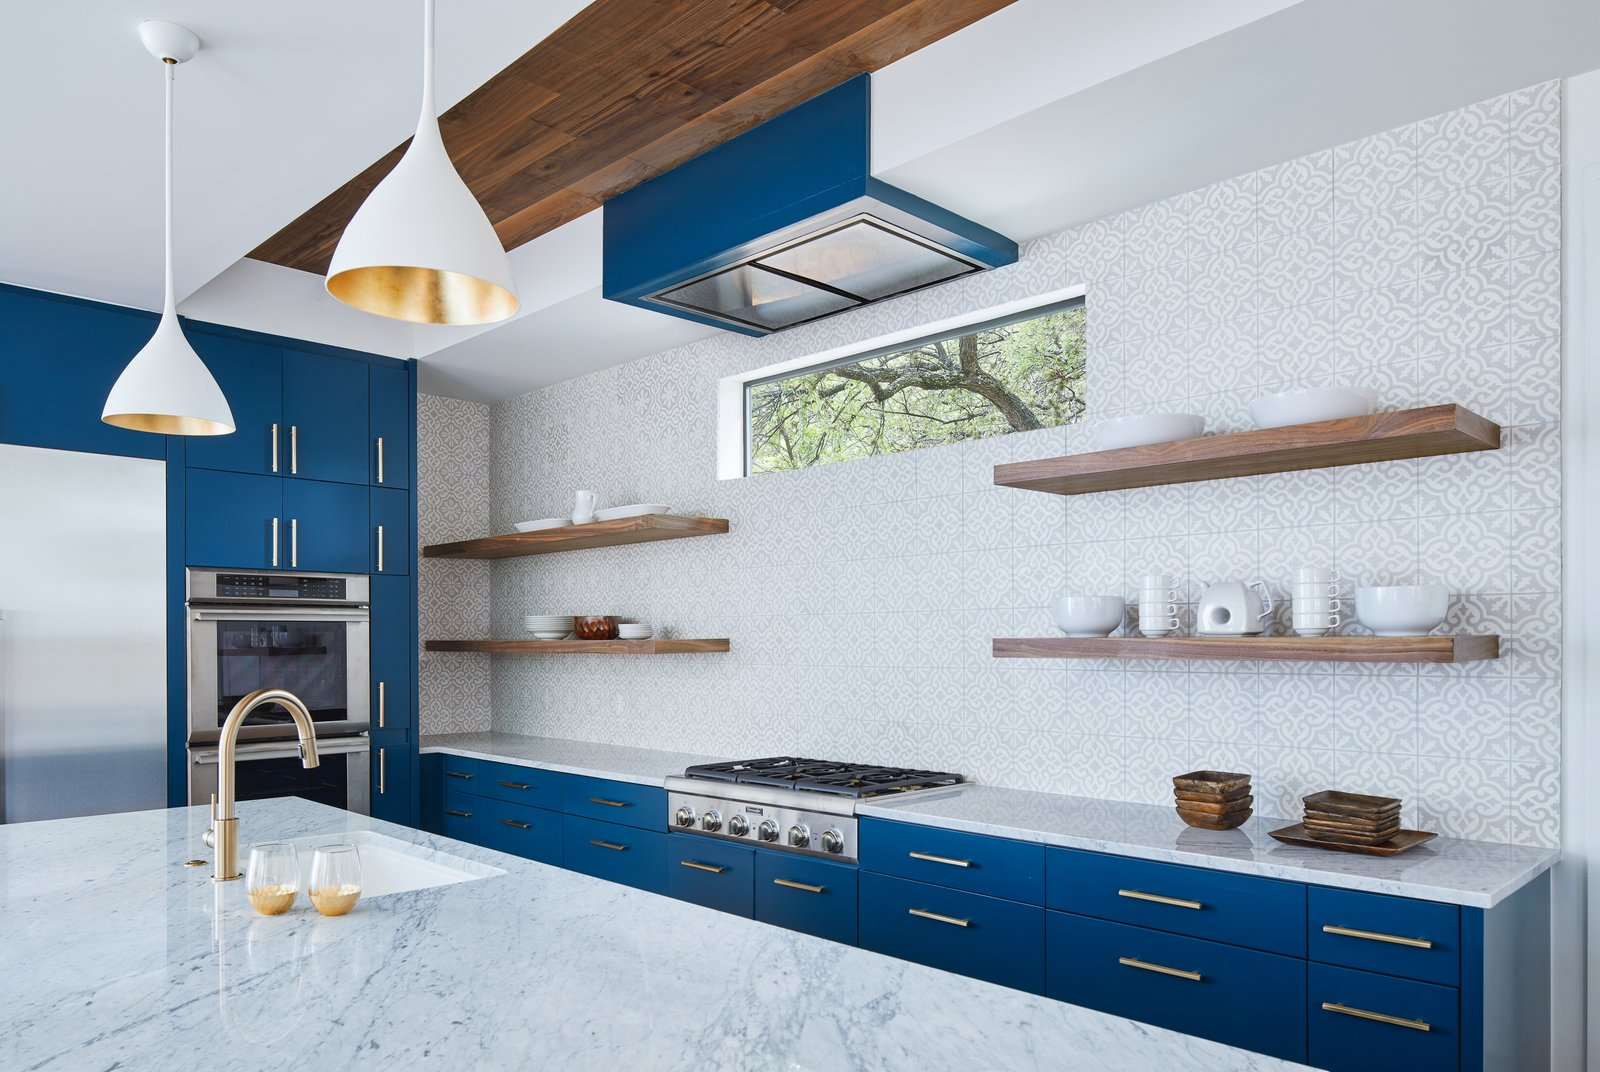 Kitchen, Refrigerator, Wine Cooler, Marble, Range Hood, Wall Oven, Colorful, Concrete, Dark Hardwood, Stone Tile, Cooktops, Pendant, Ceramic Tile, Ceiling, and Undermount Kitchen  Best Kitchen Concrete Cooktops Ceiling Wine Cooler Photos from Chelsea House